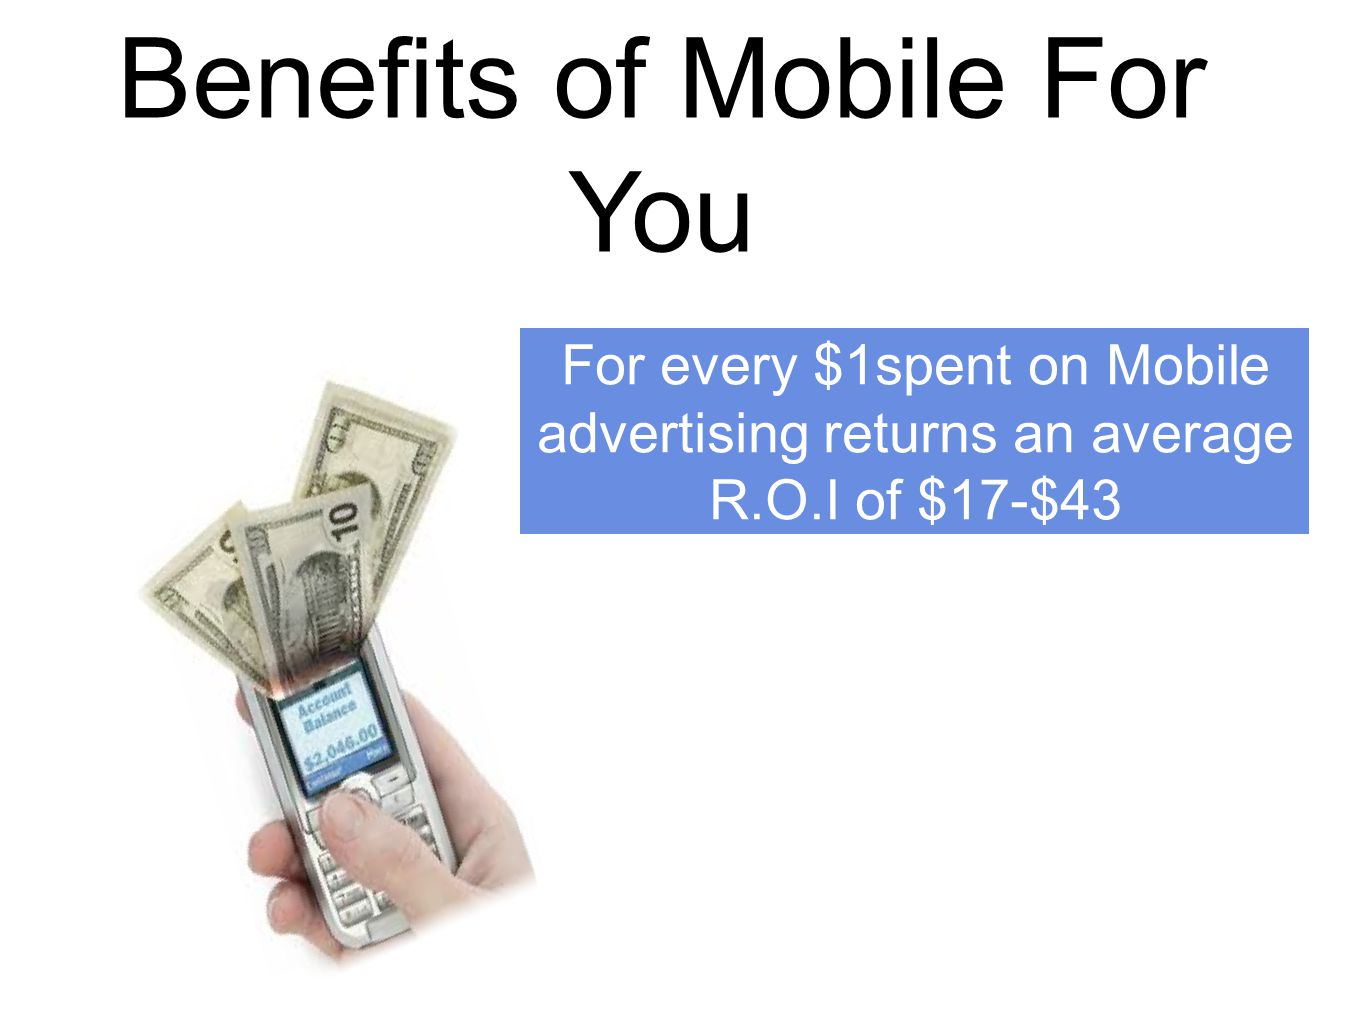 Benefits of Mobile For You For every $1spent on Mobile advertising returns an average R.O.I of $17-$43